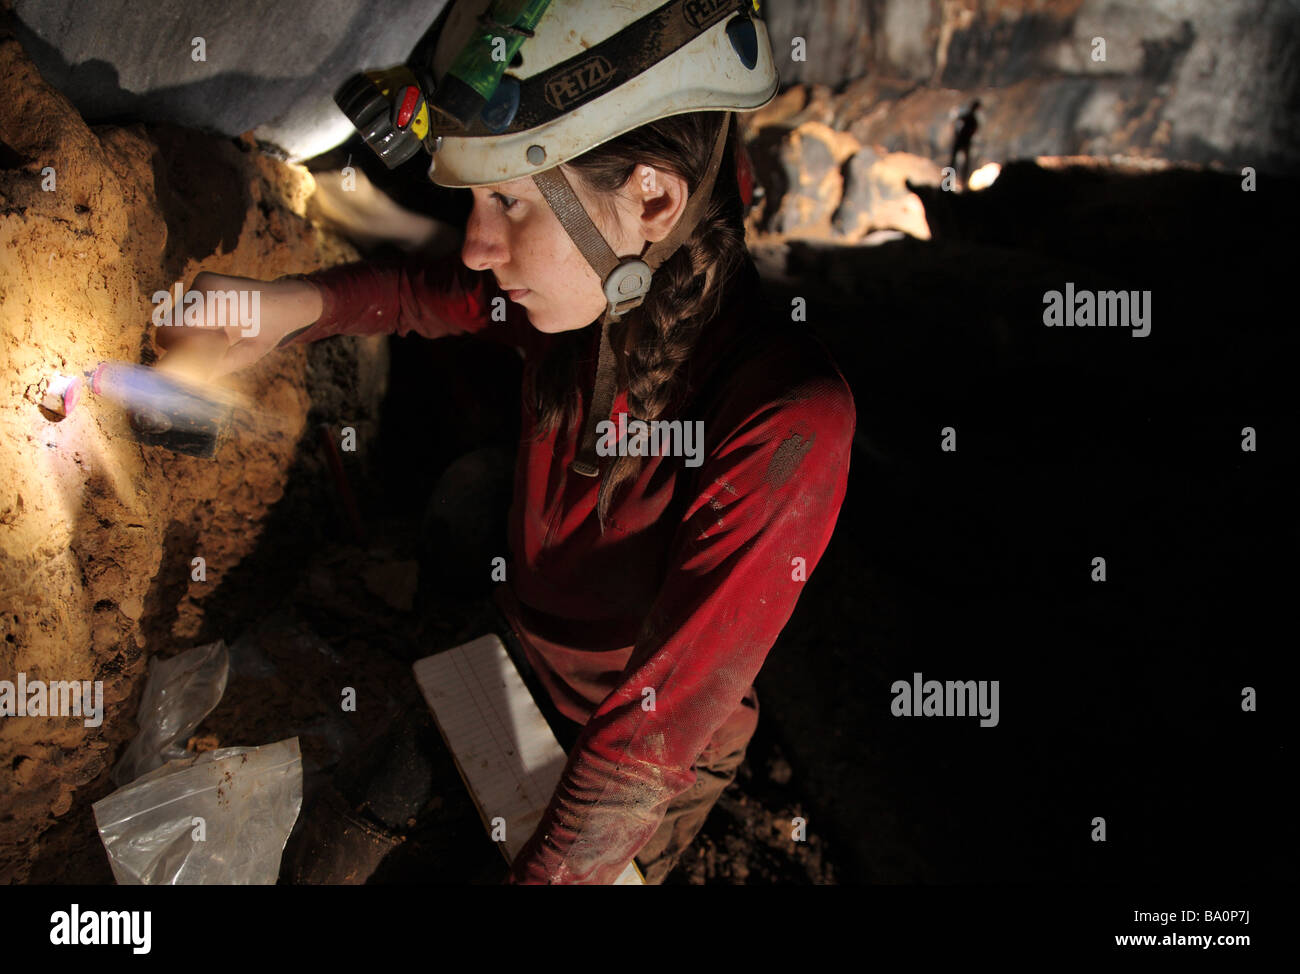 Young female PhD student takes core sediment samples from a mud bank in a cave in Mulu National Park, Sarawak Borneo - Stock Image